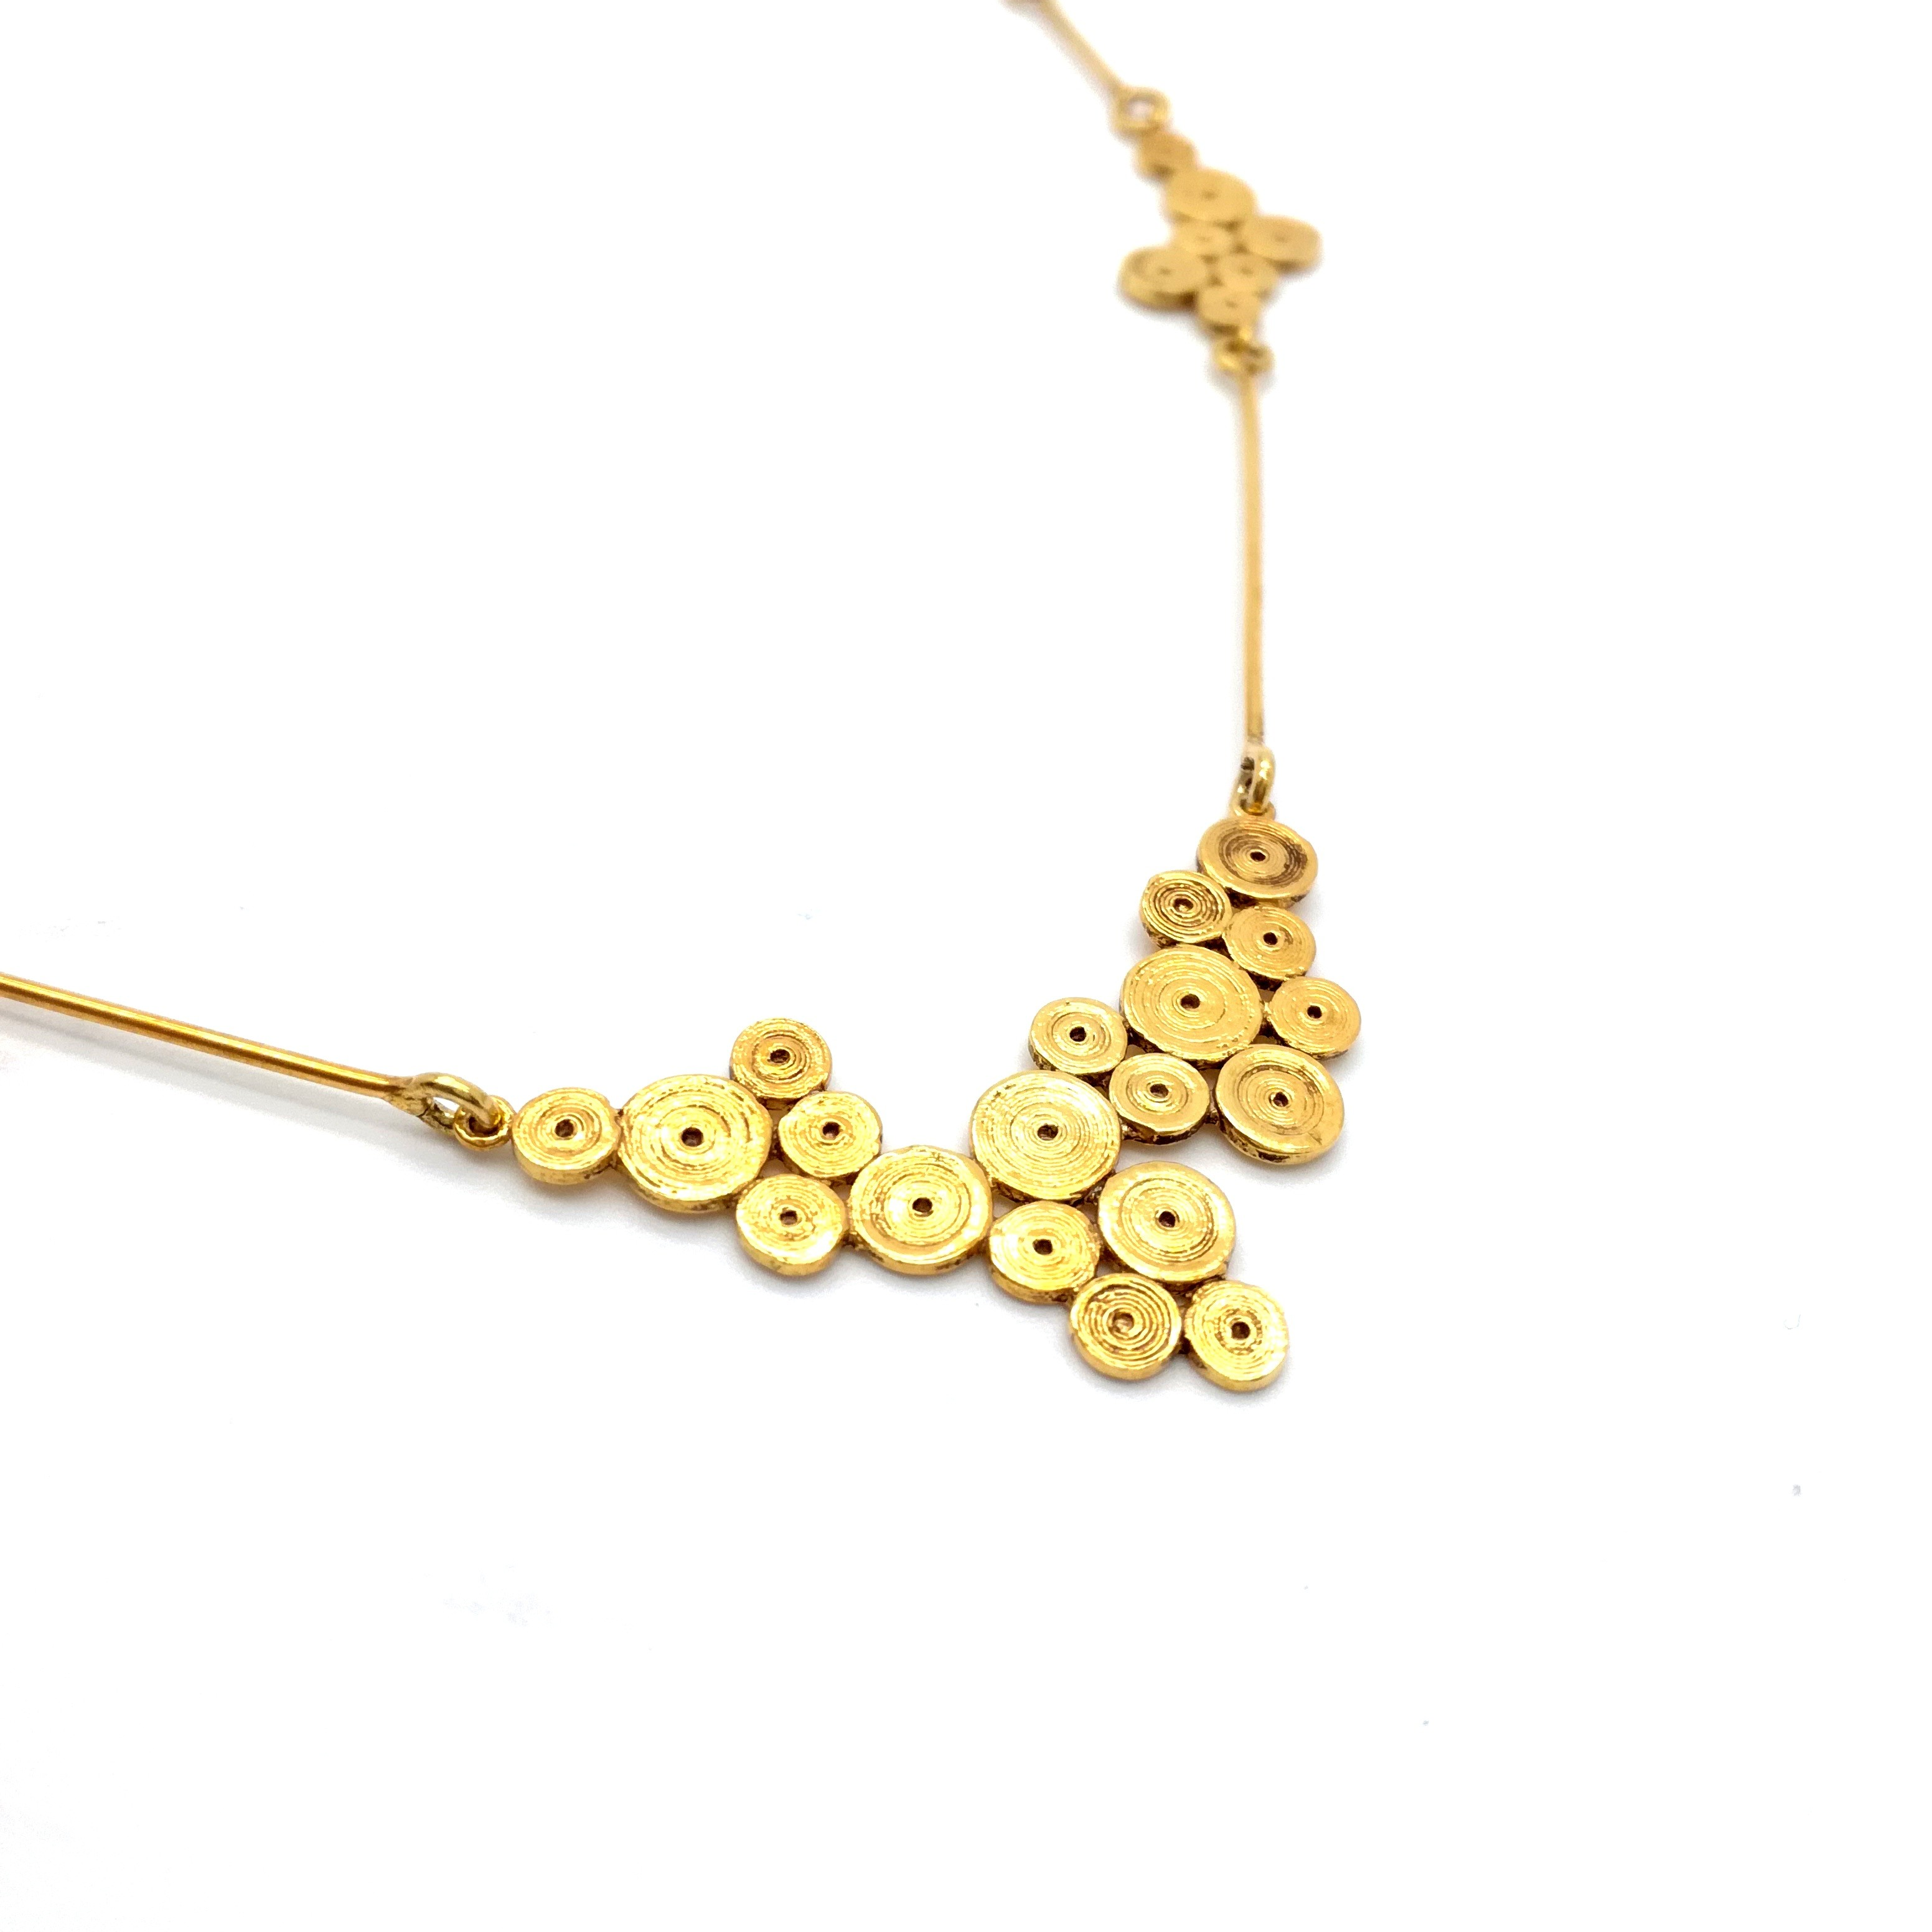 Silver necklace 925 gold plated